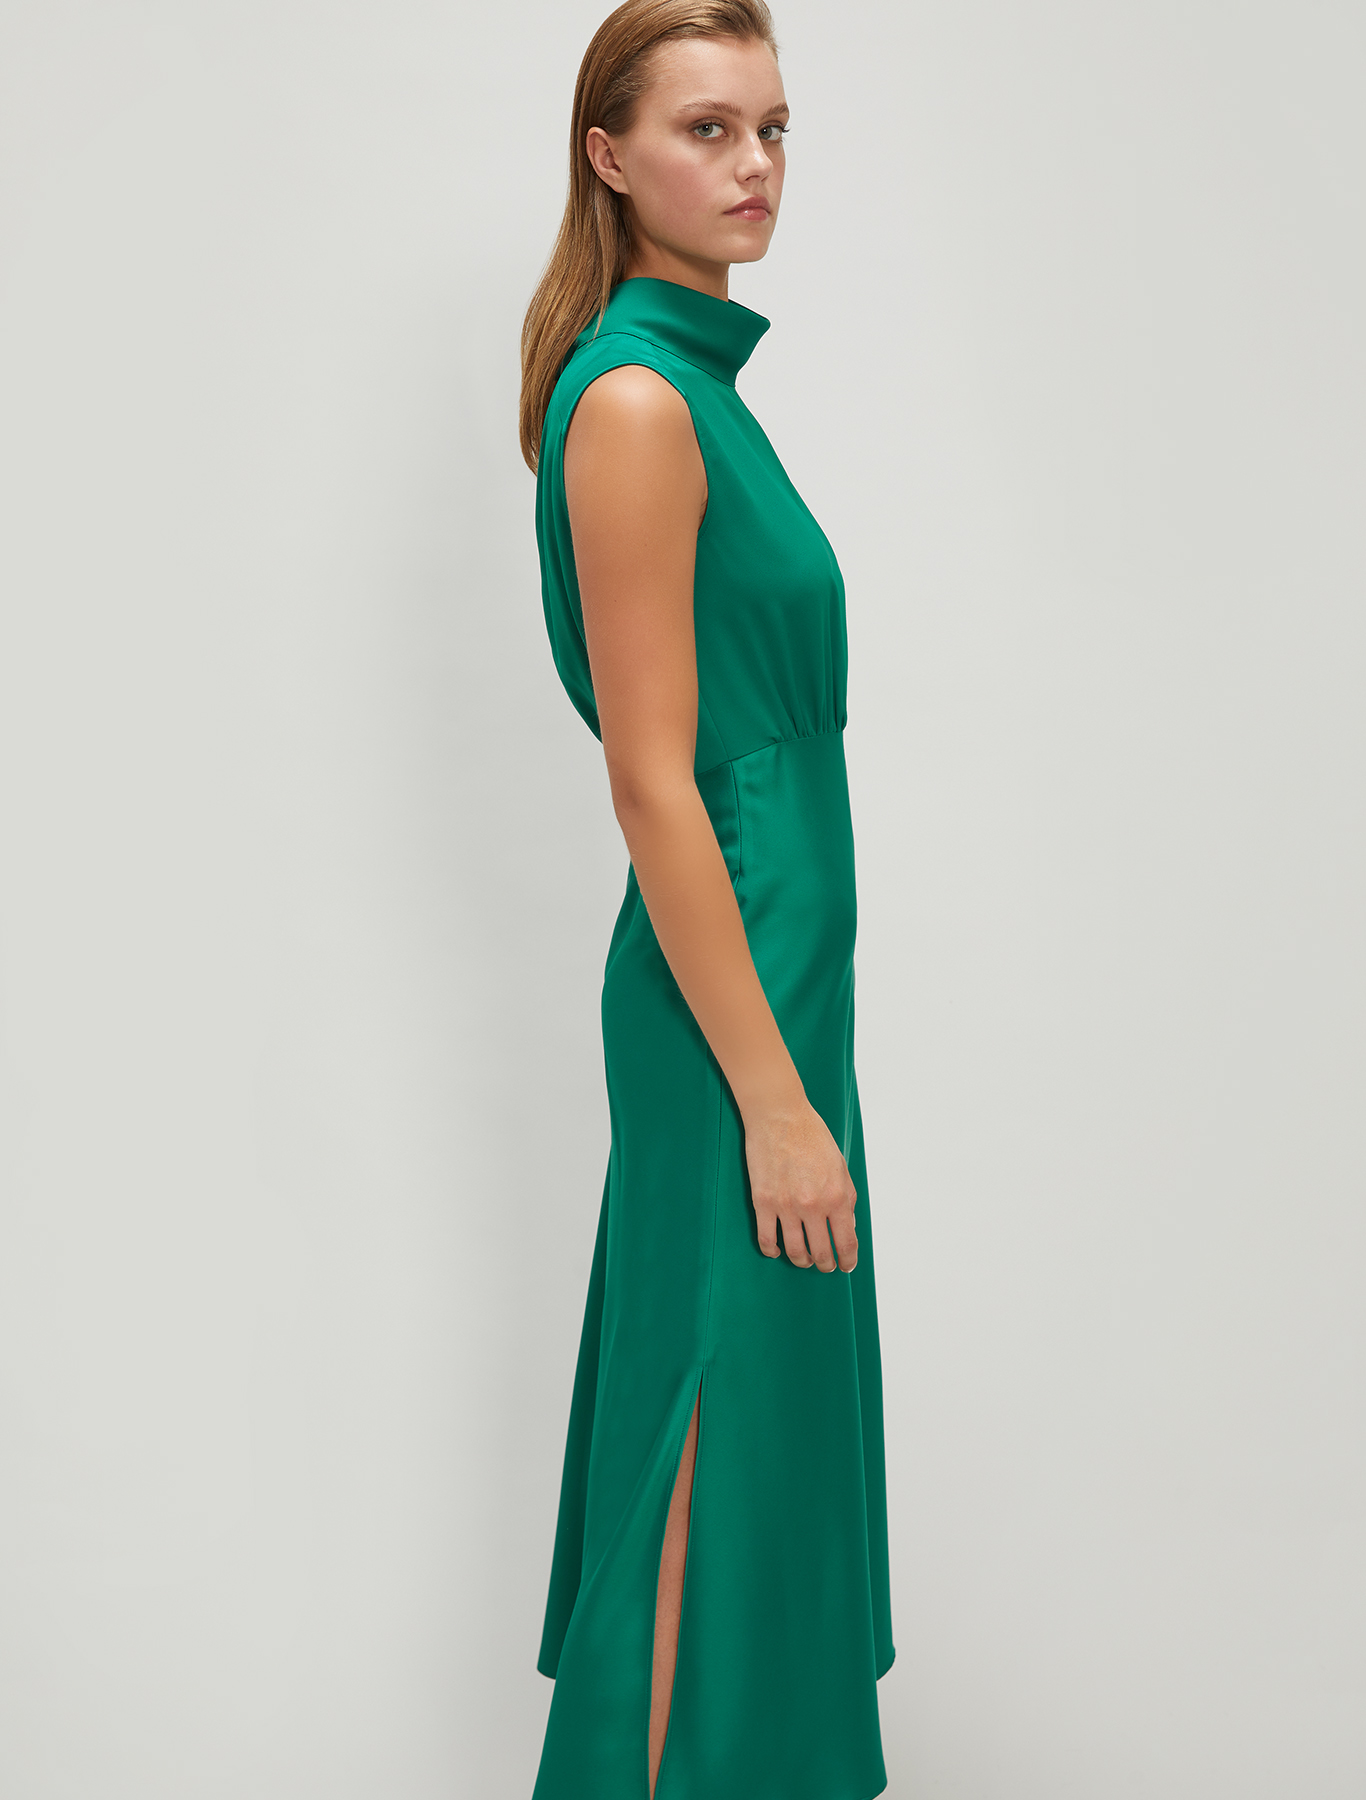 Envers satin dress - emerald green - pennyblack